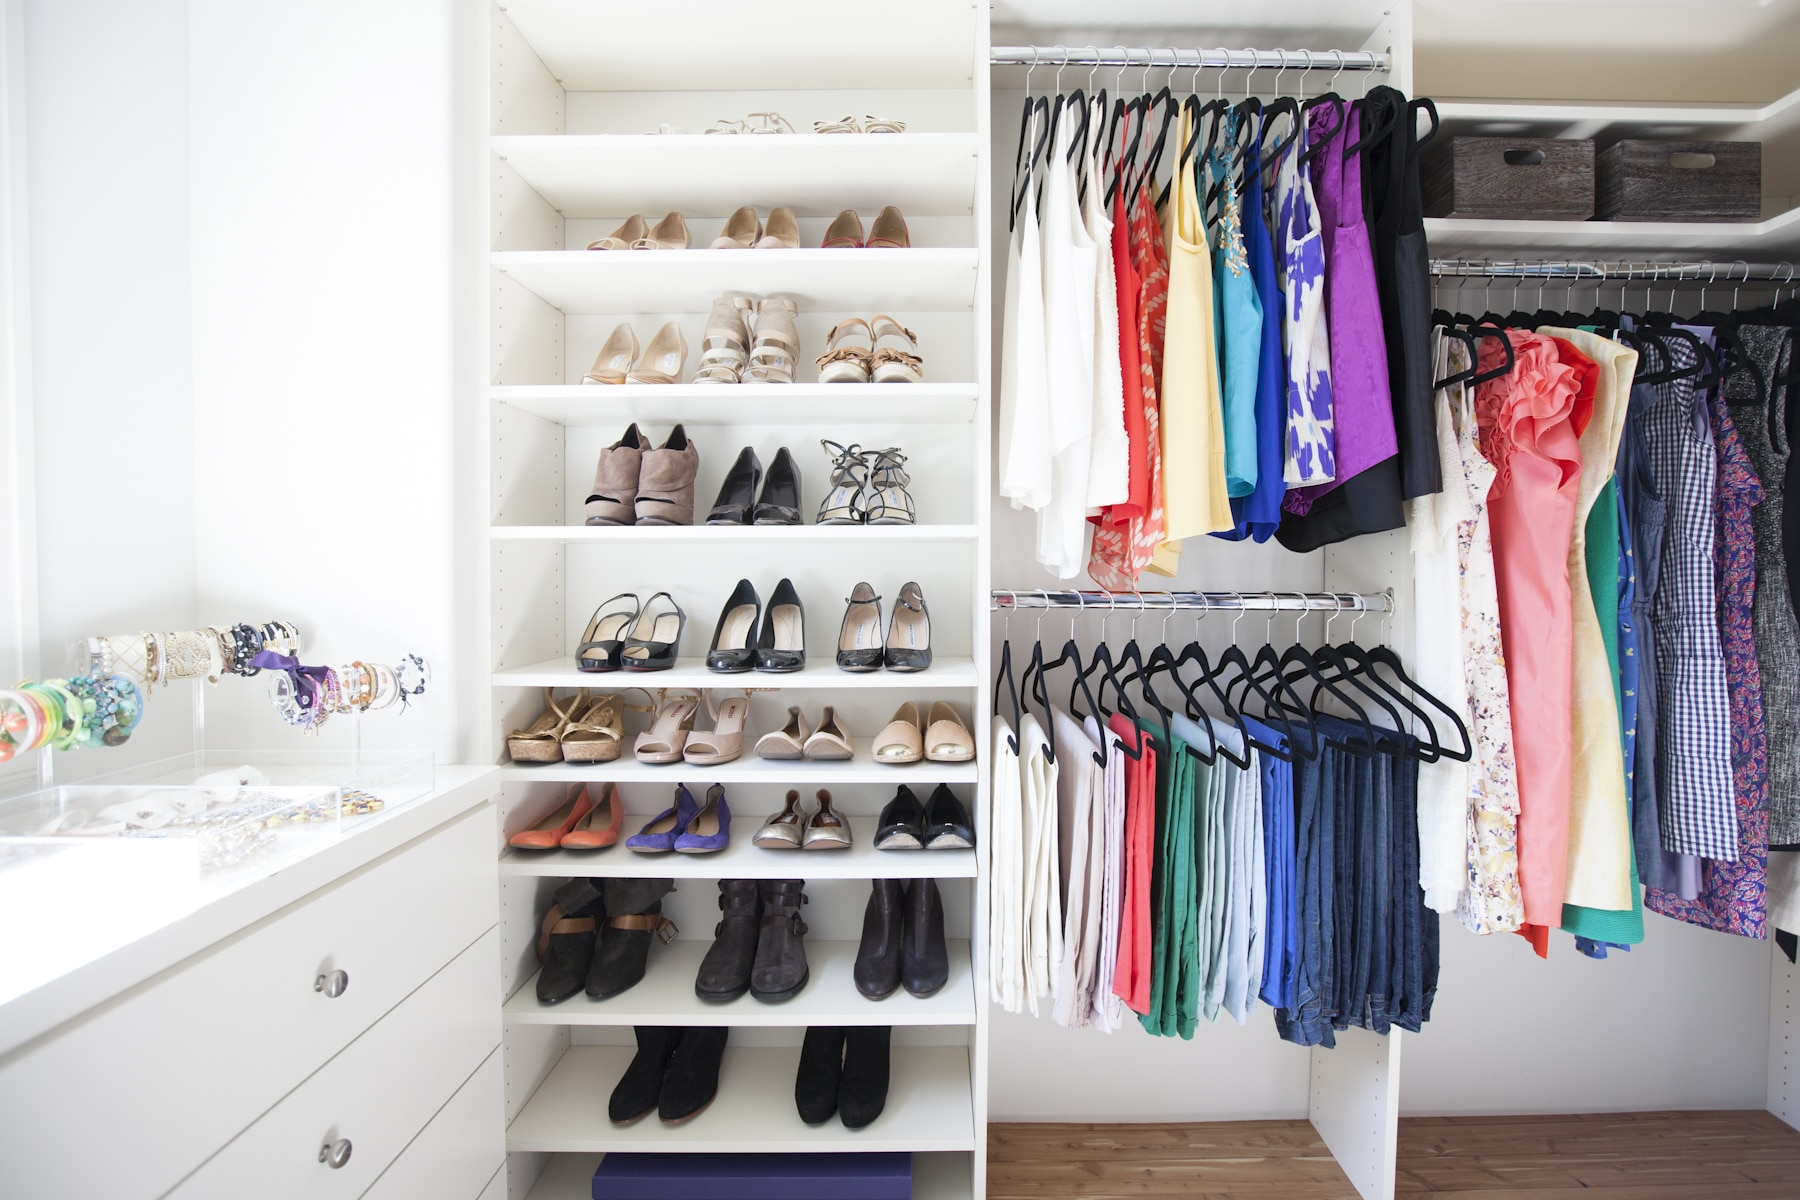 Closet organization and clean out by The Neat Method and Gracefully Nested